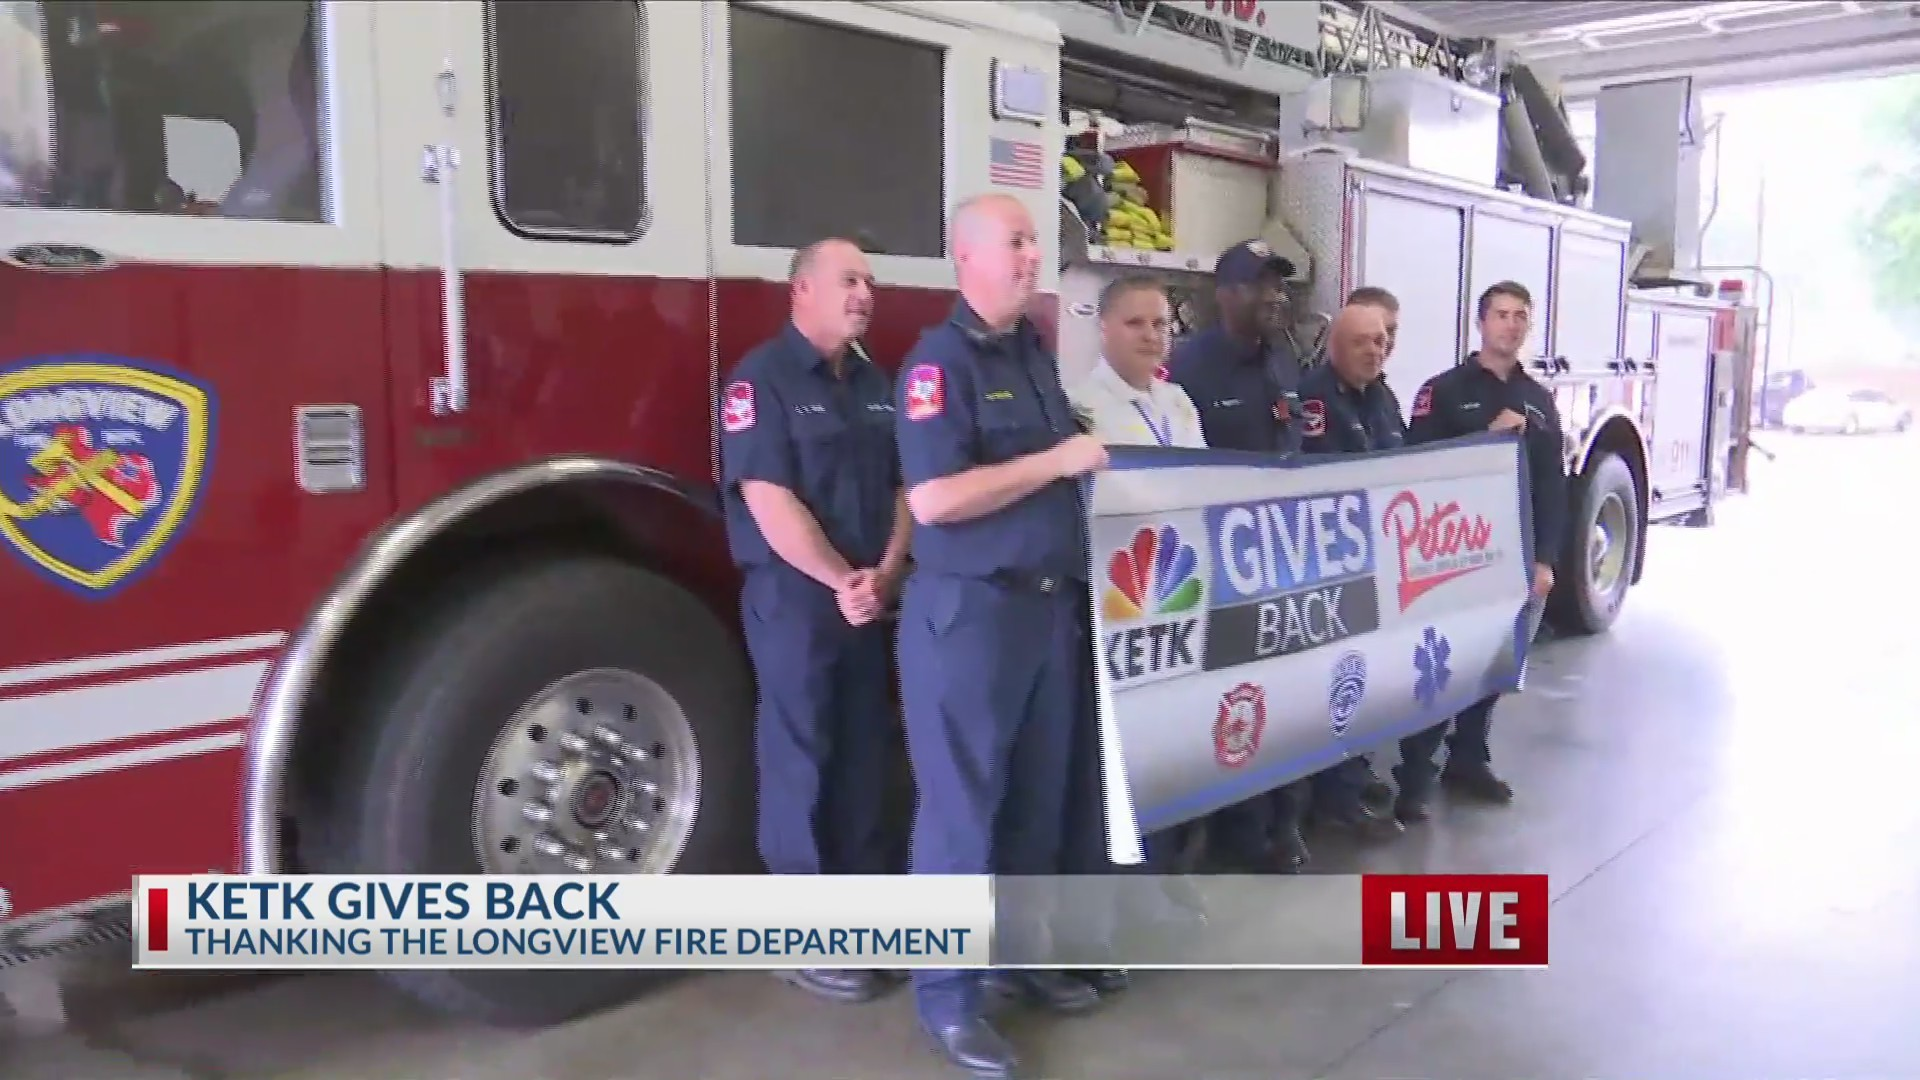 KETK_GIVES_BACK__KETK_and_Peters_Chevrol_0_20190508205257